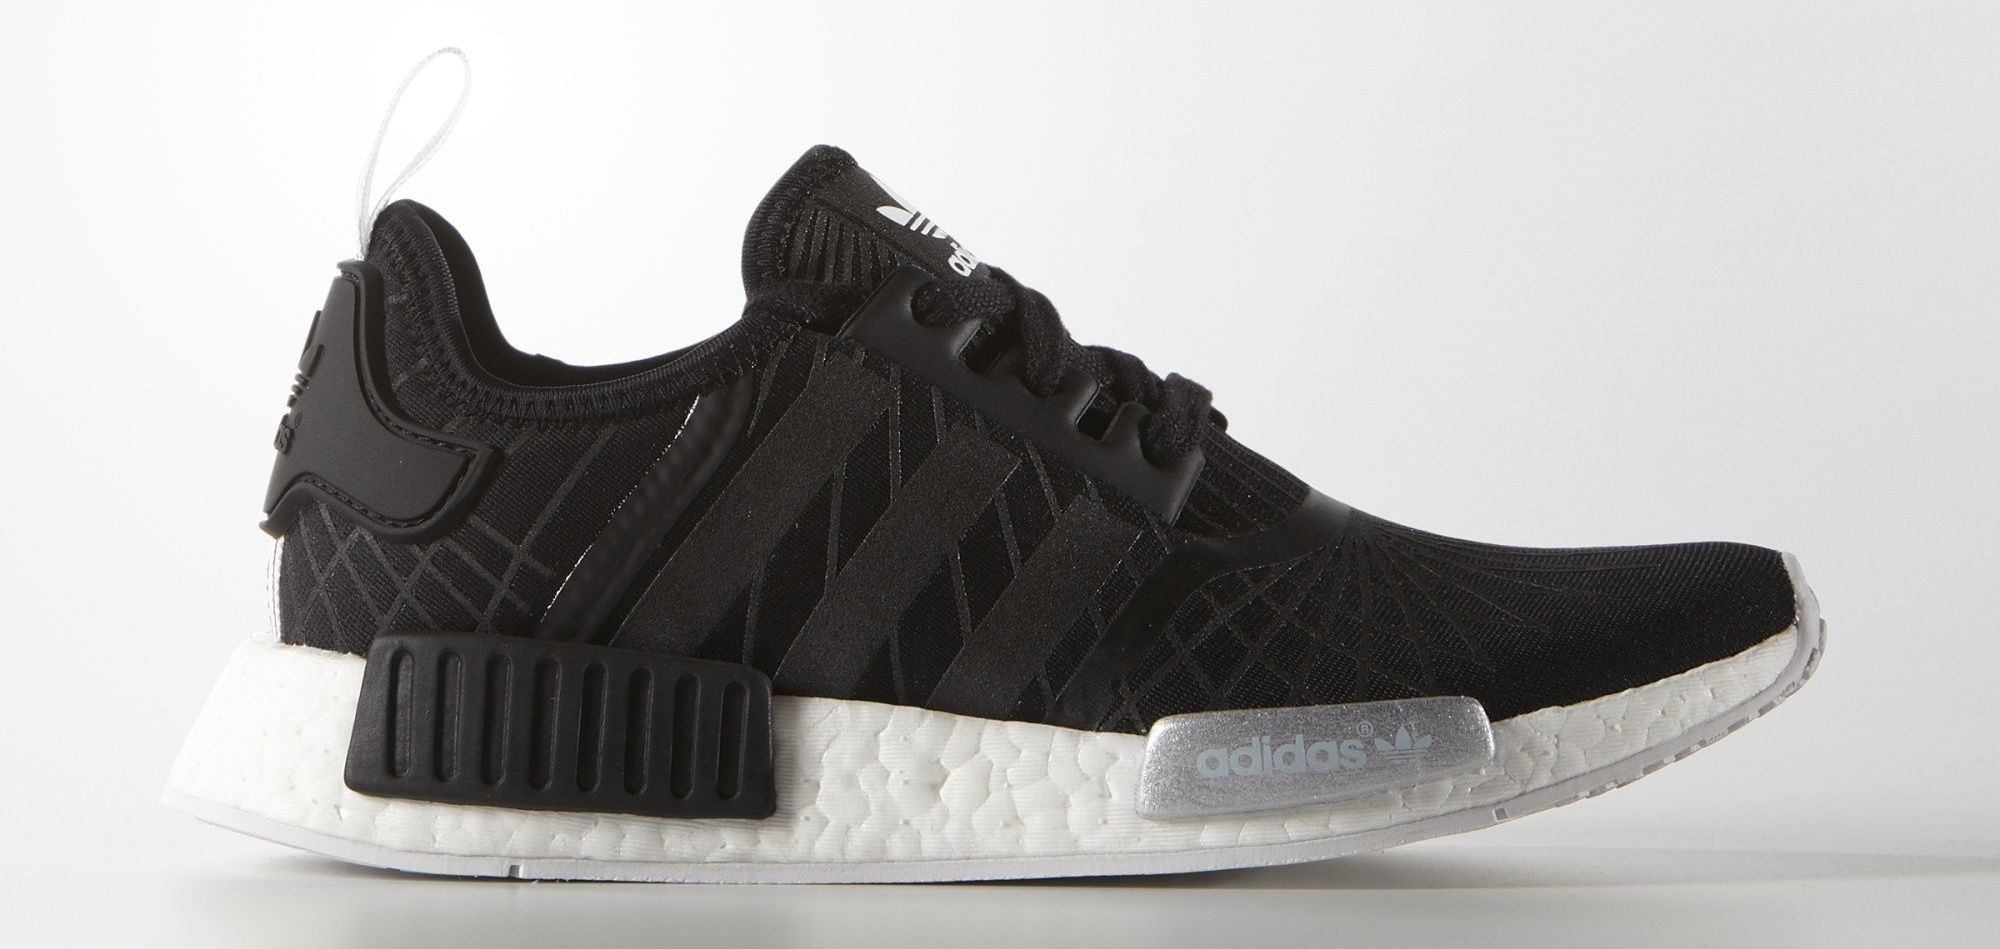 the adidas nmd r1 runner is available in multiple. Black Bedroom Furniture Sets. Home Design Ideas